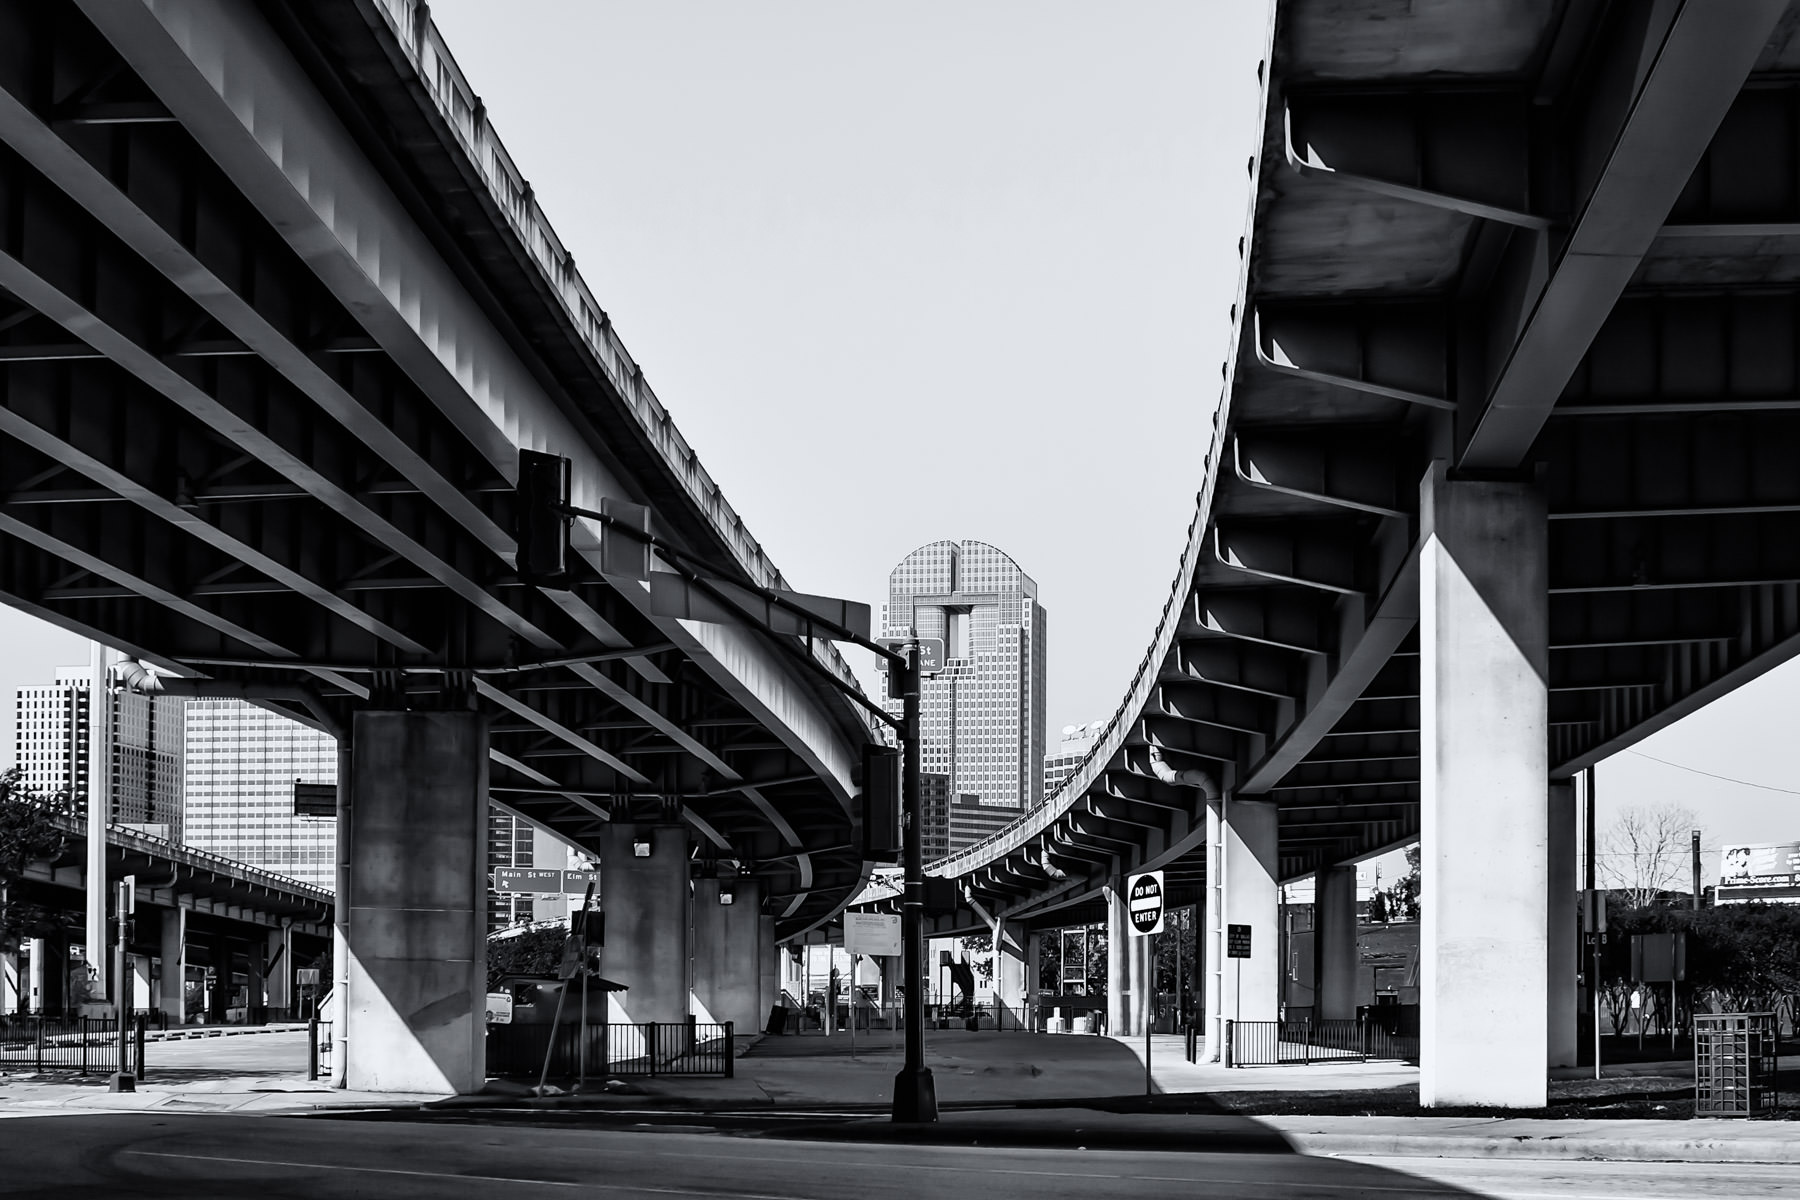 Bridges on US 75 as it passes over Good-Latimer Expressway in Dallas.